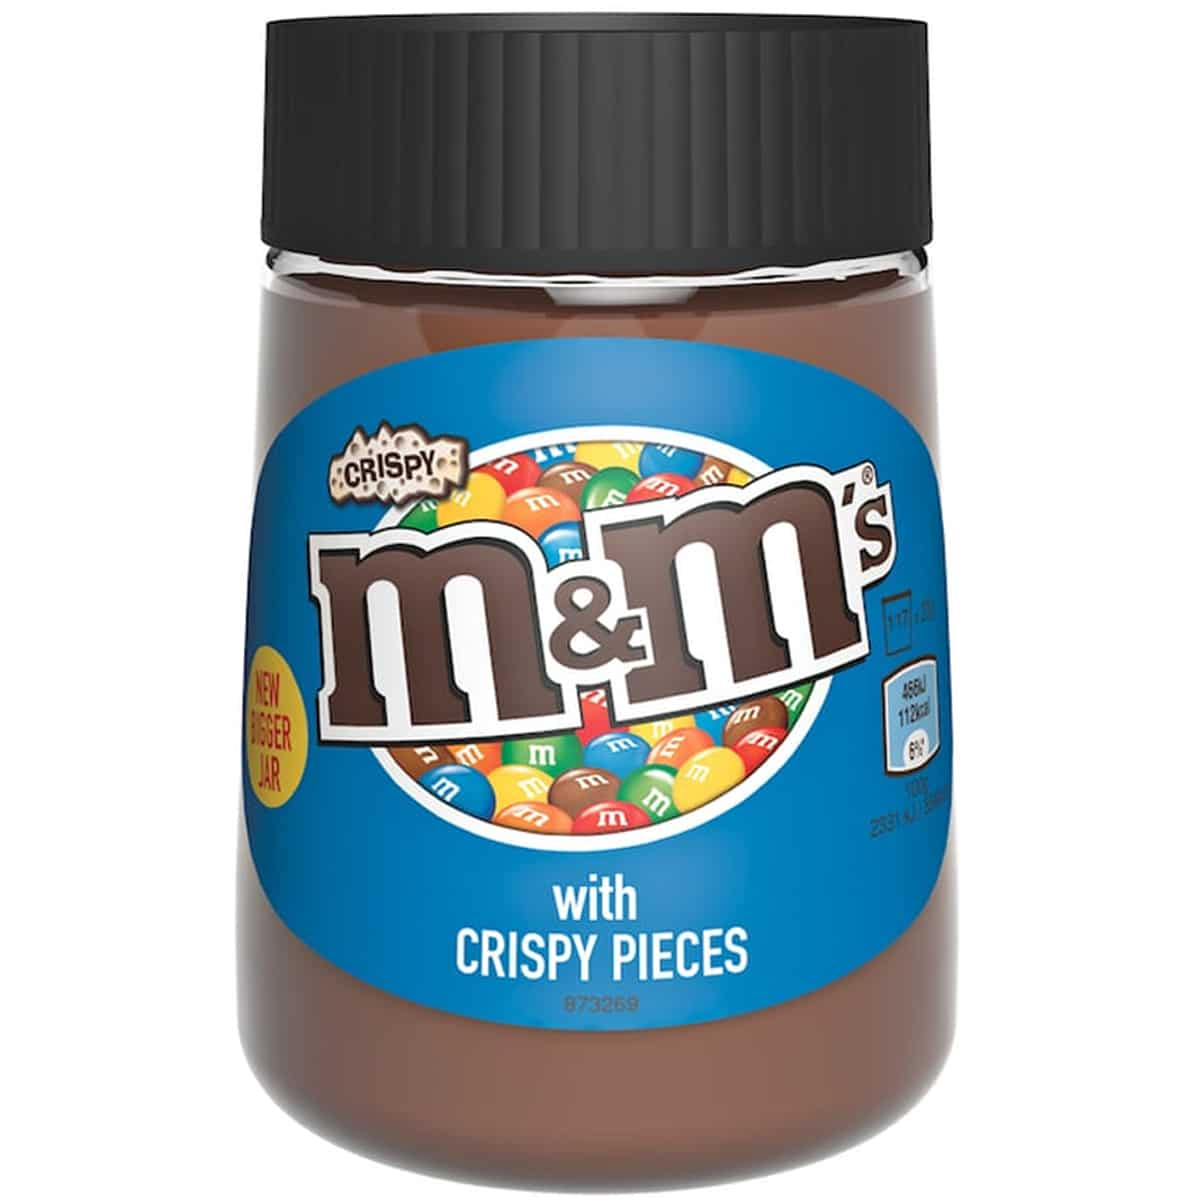 Crispy M&M's Spread is now available in the U.S. via Amazon 14